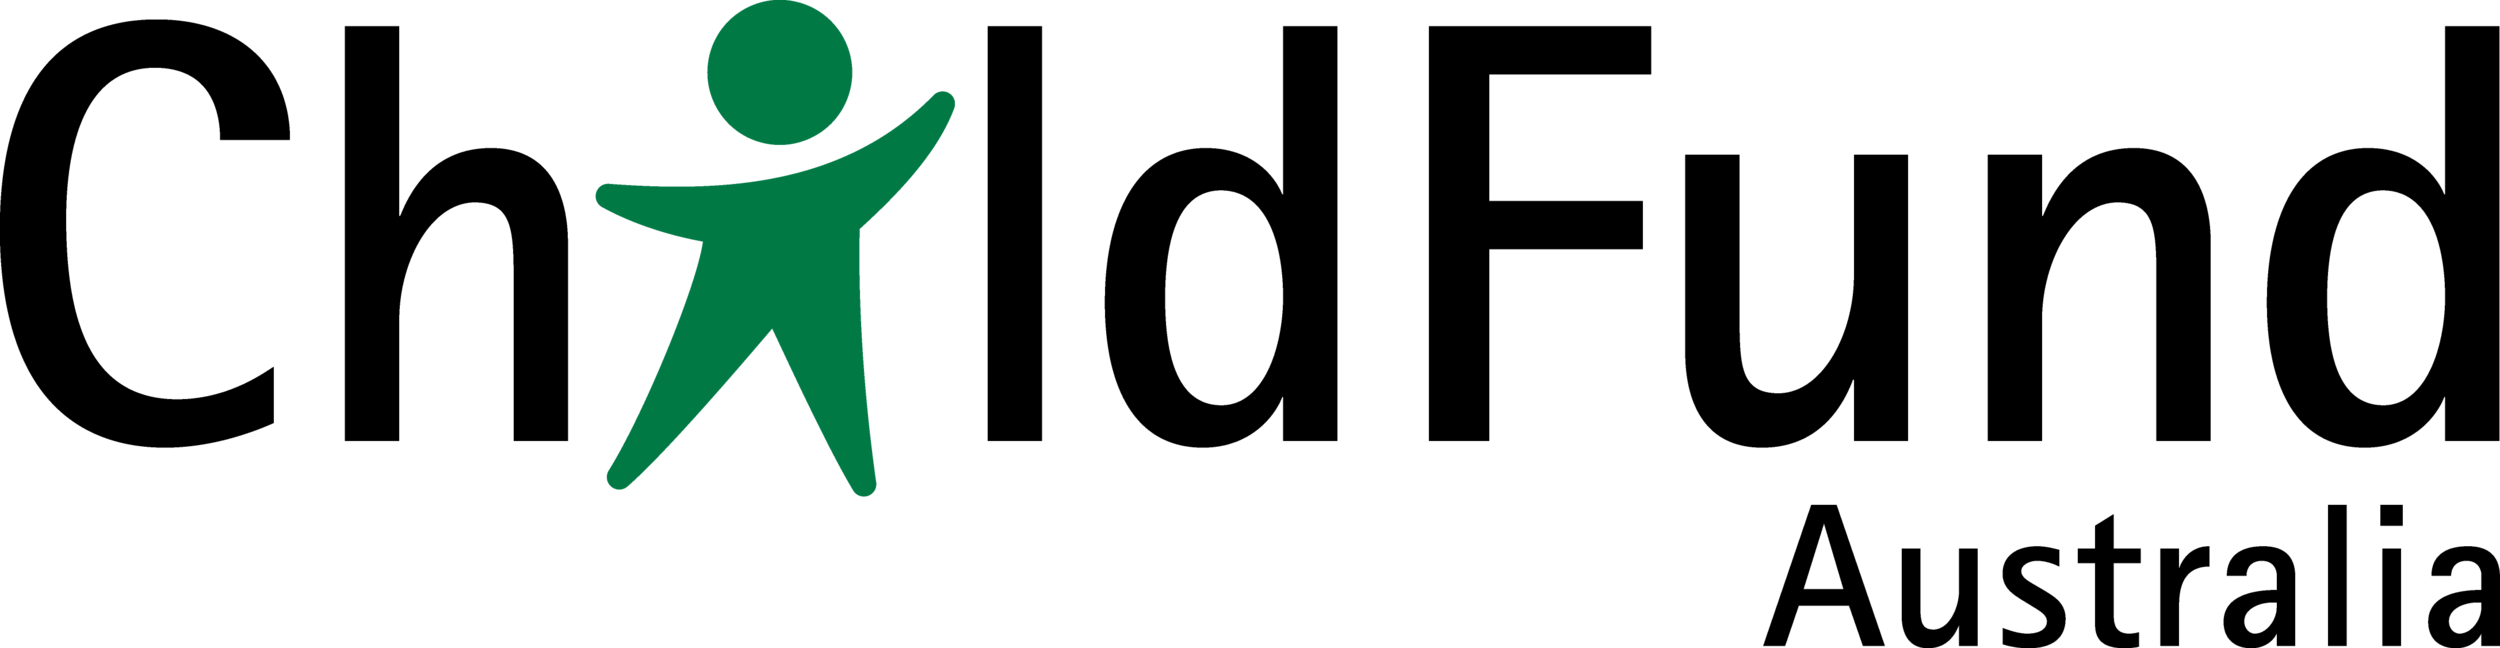 Childfund Australia is an independent international development organisation that works to reduce poverty for children in developed countries.   https://www.childfund.org.au/